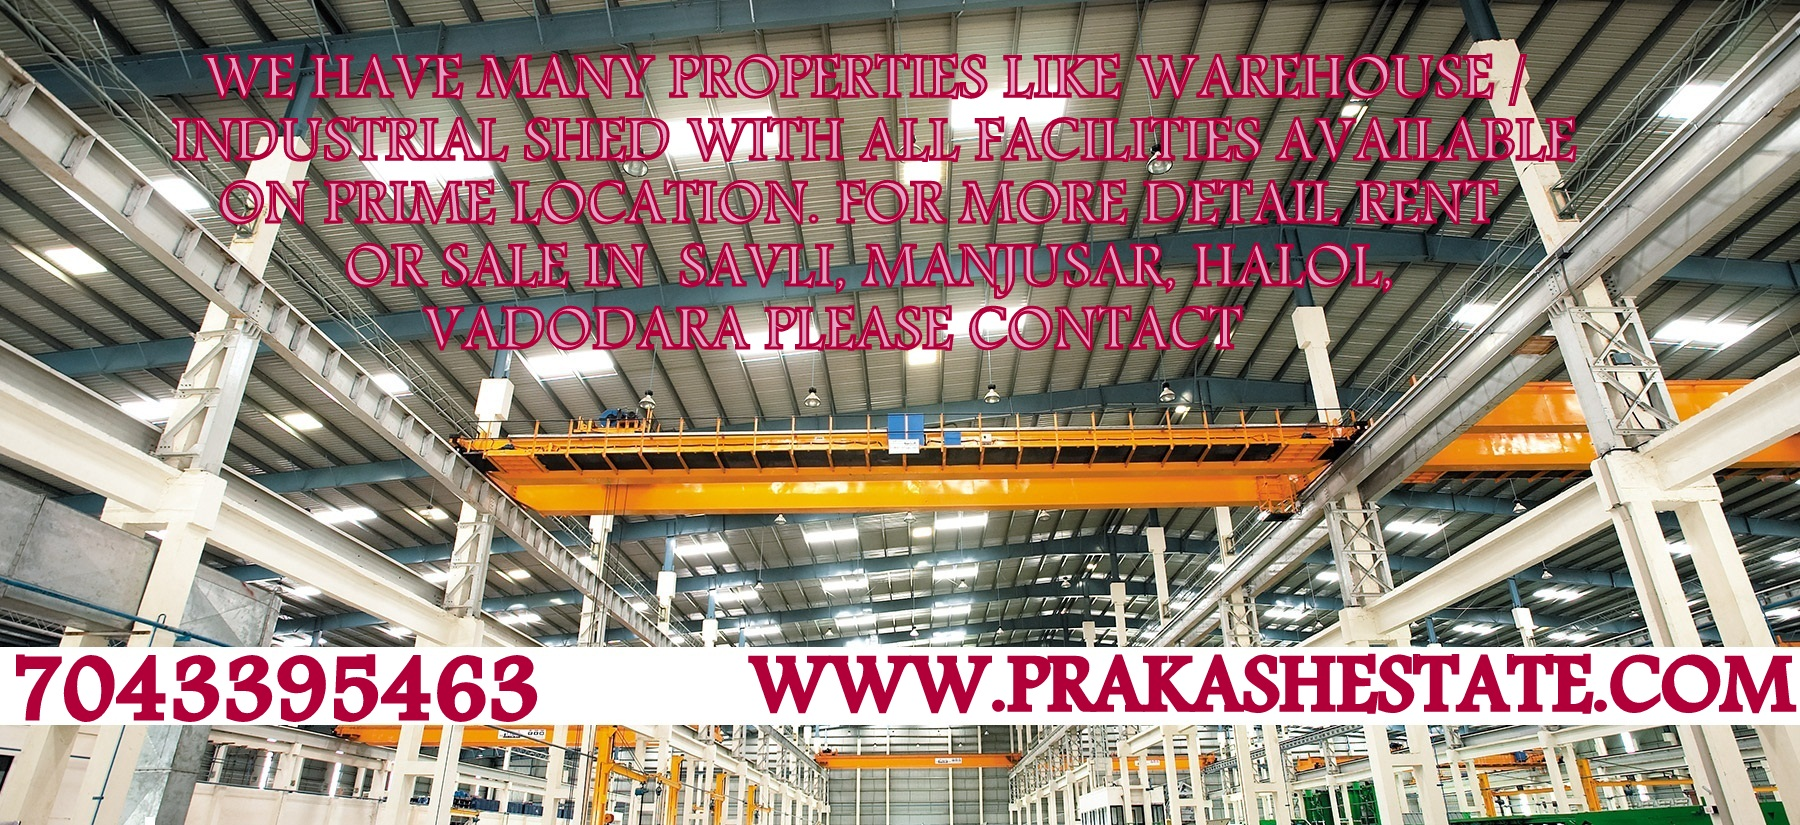 50000 TO 100000 SQ.FT INDUSTRIAL SHED | FACTORY FOR RENT IN BECHARAJI VITHALAPUR MEHSANA – 7043395463